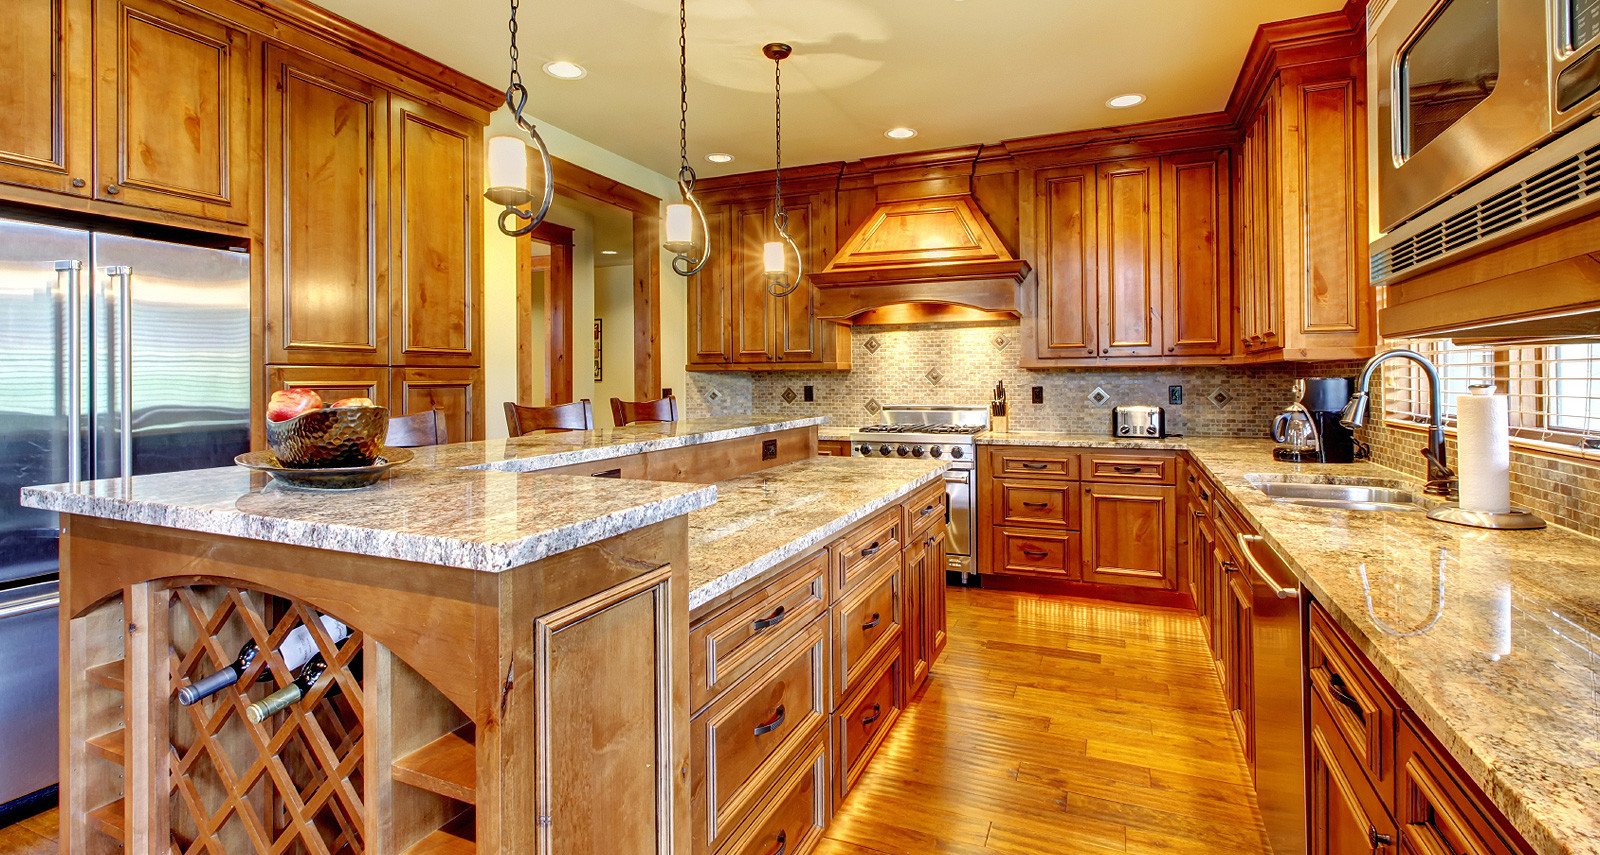 Wooden design luxury kitchen